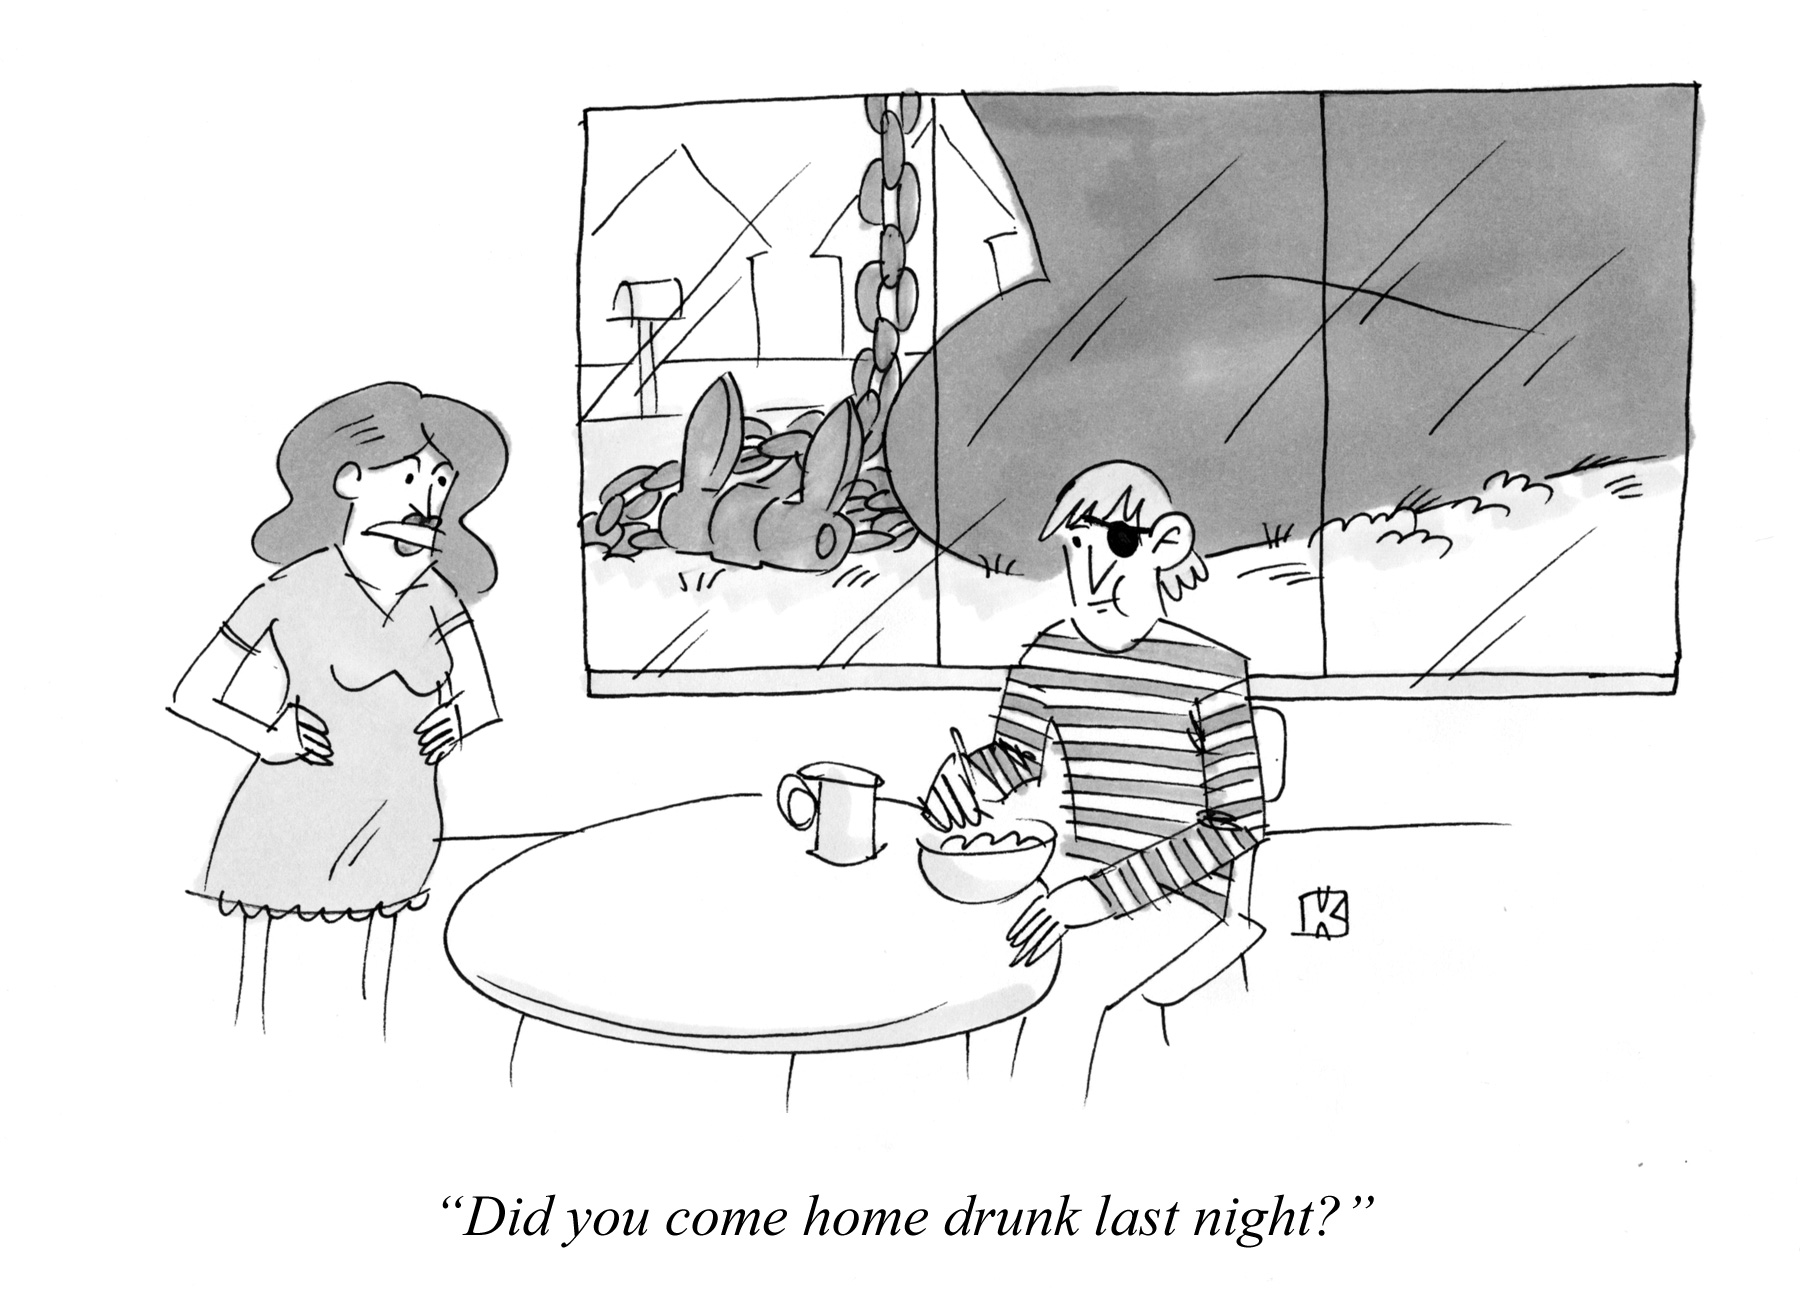 Did you come home drunk last night?